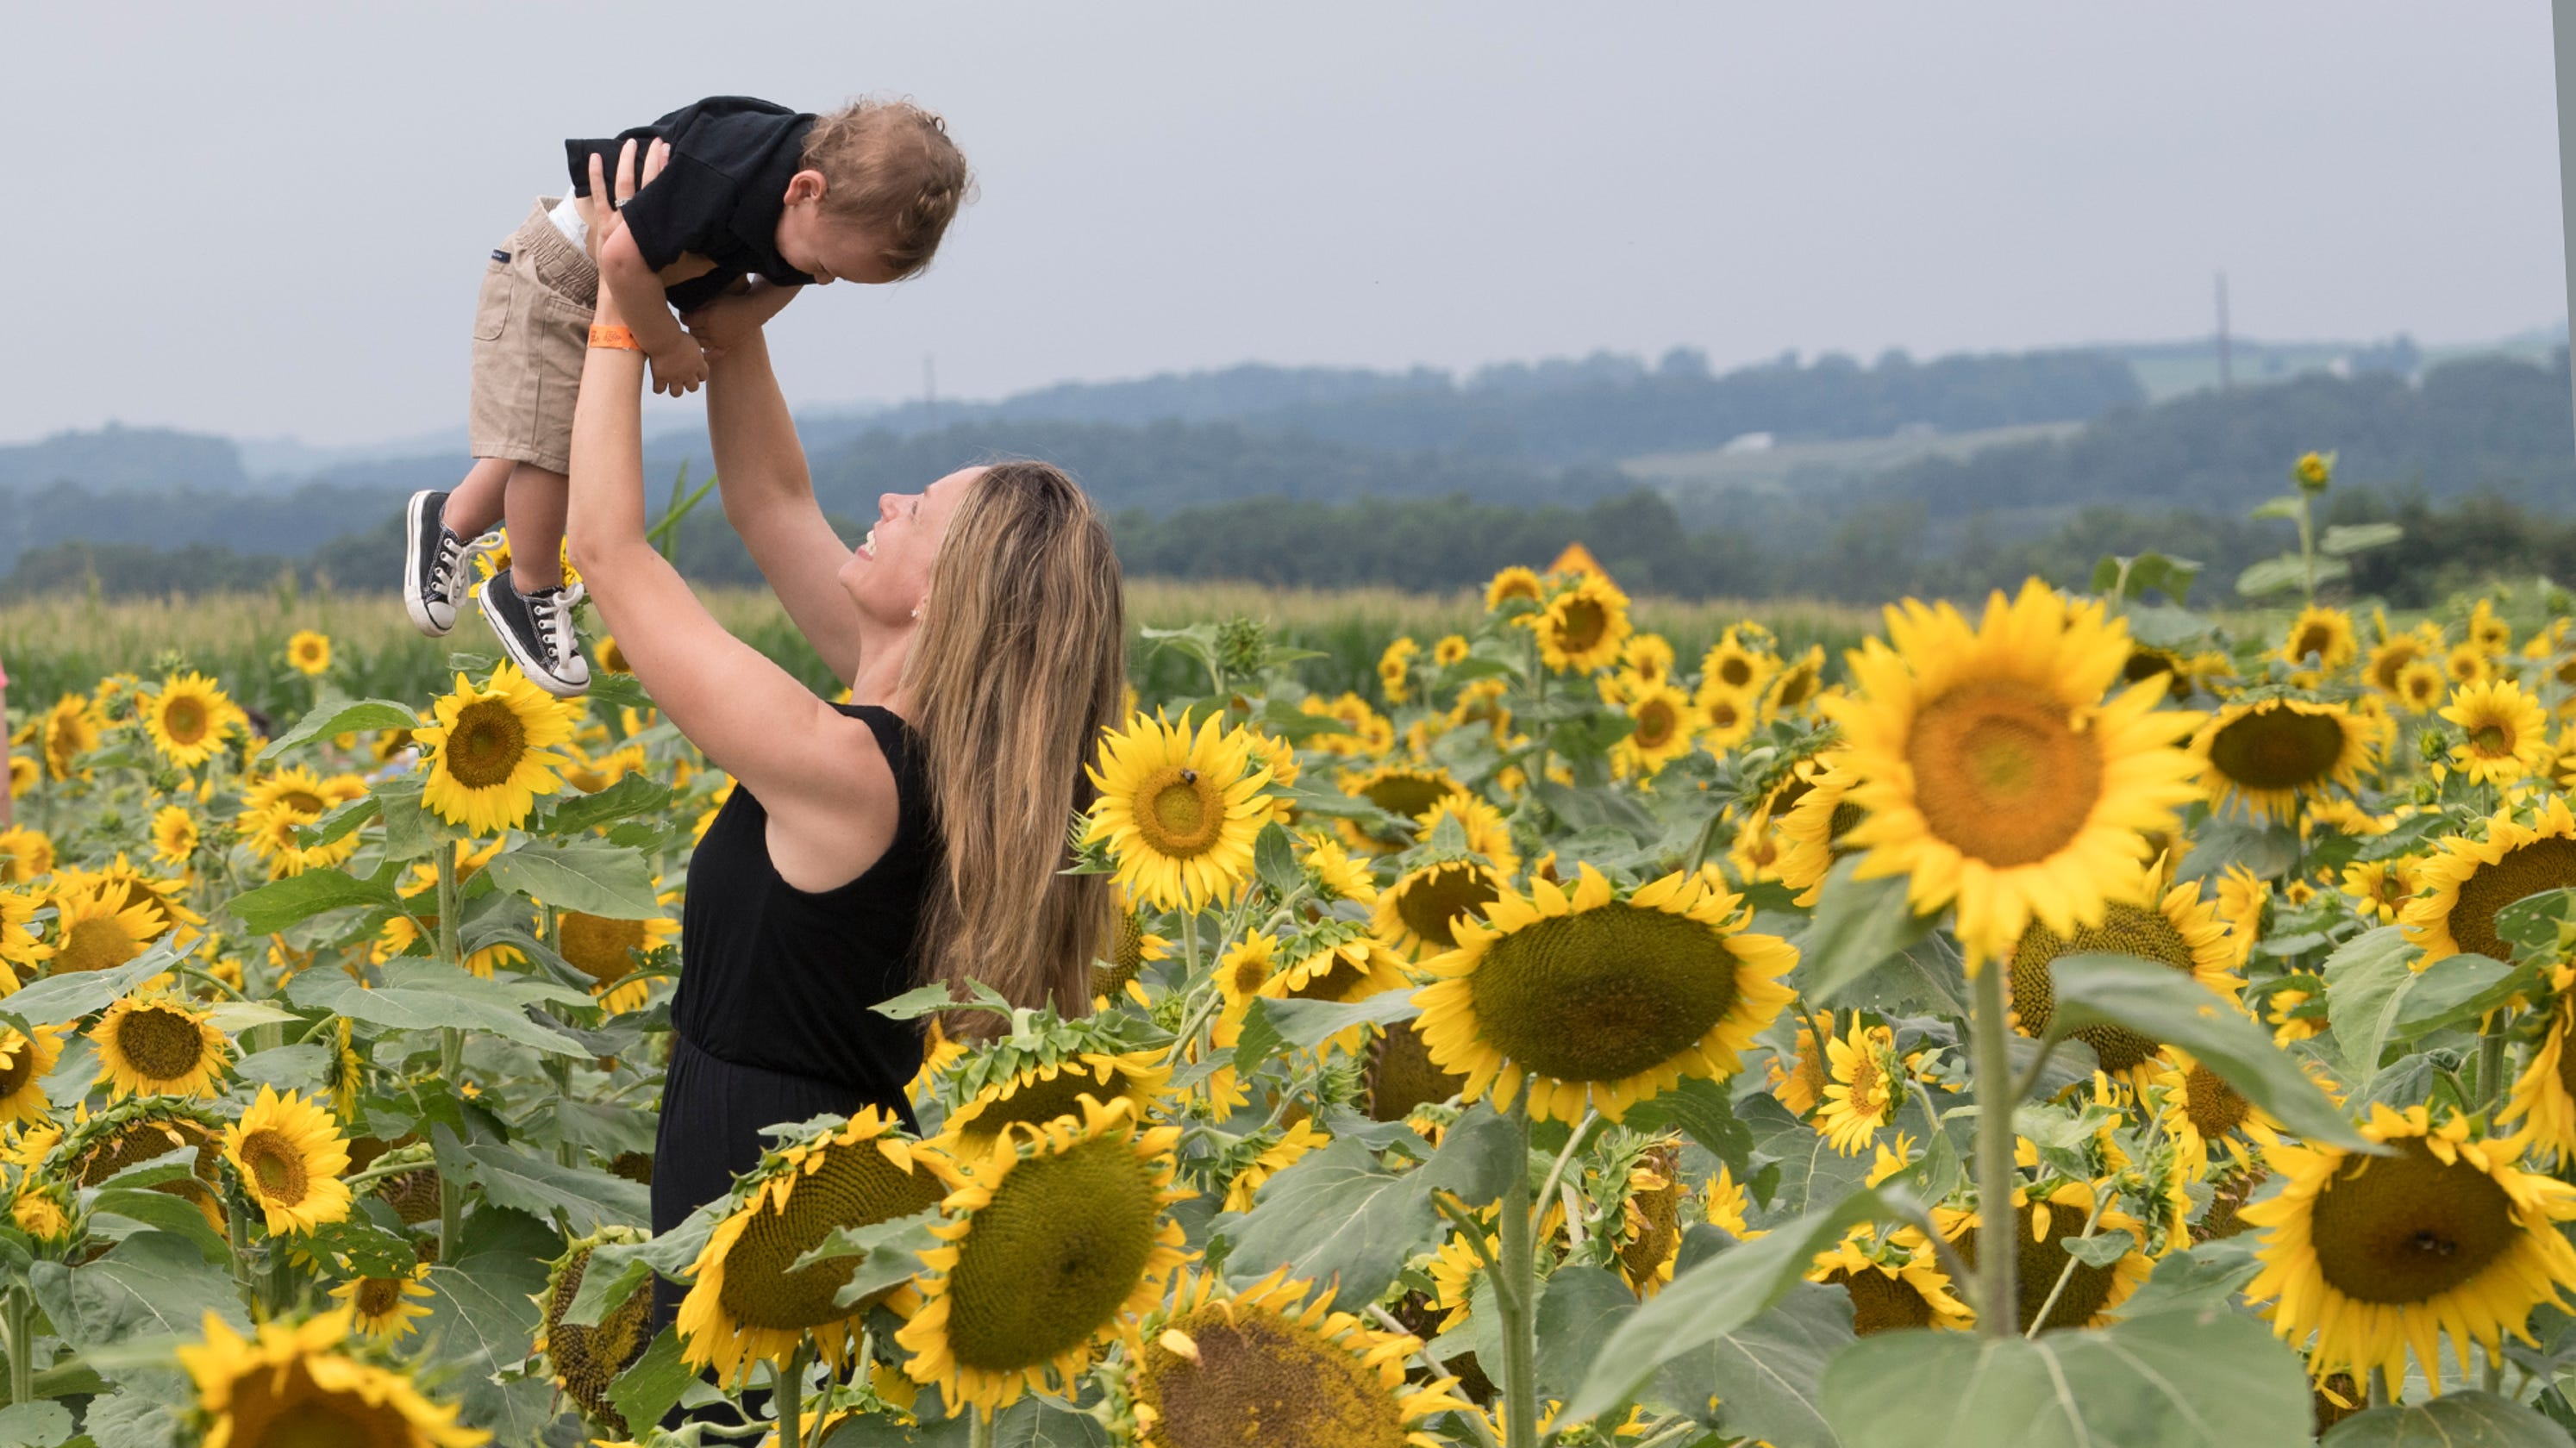 sunflower festival at maple lawn farms covers 10 acres